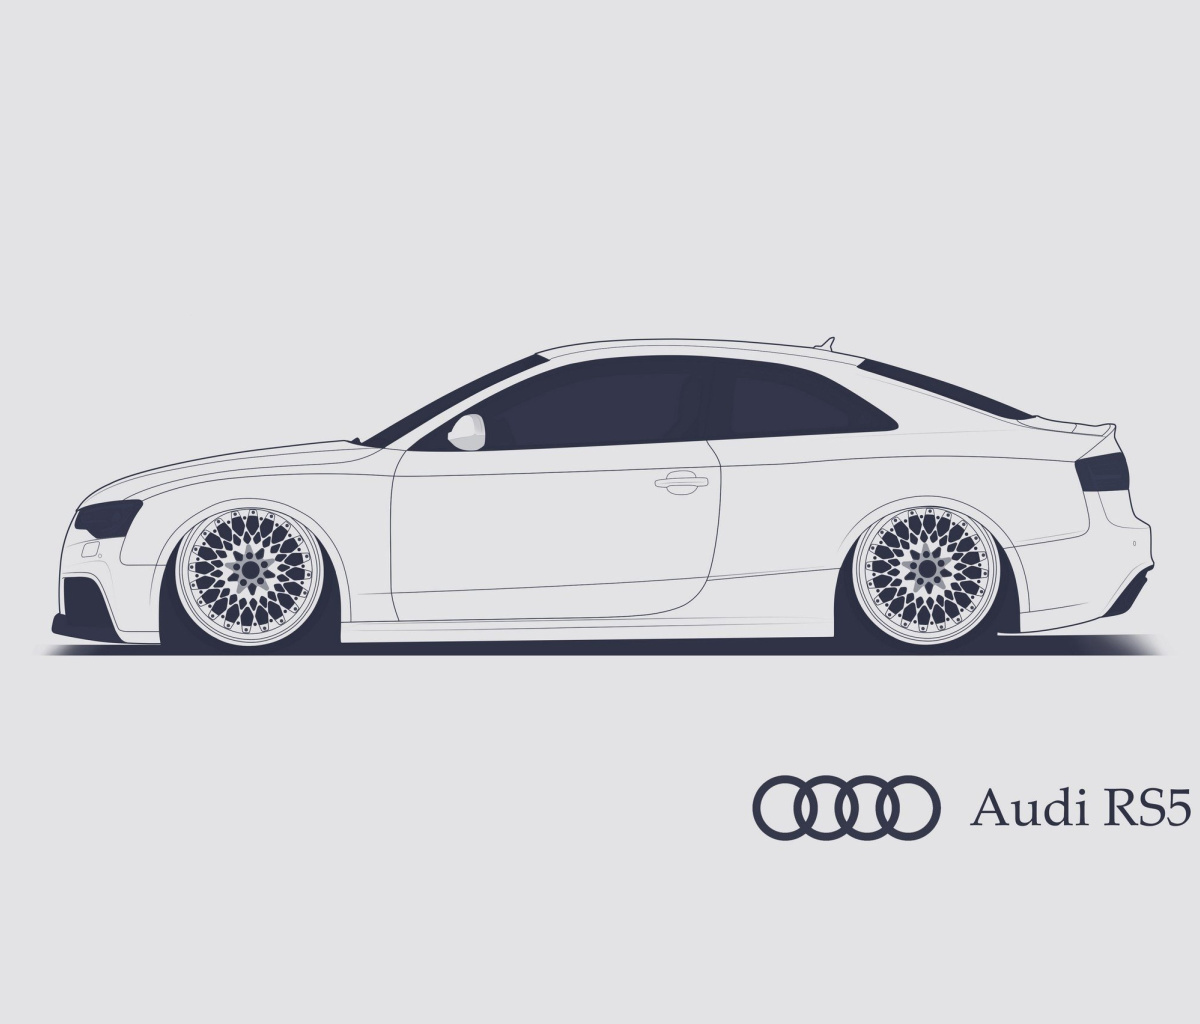 Rs Wallpaper: Audi RS 5 Advertising Wallpaper For HTC Flyer